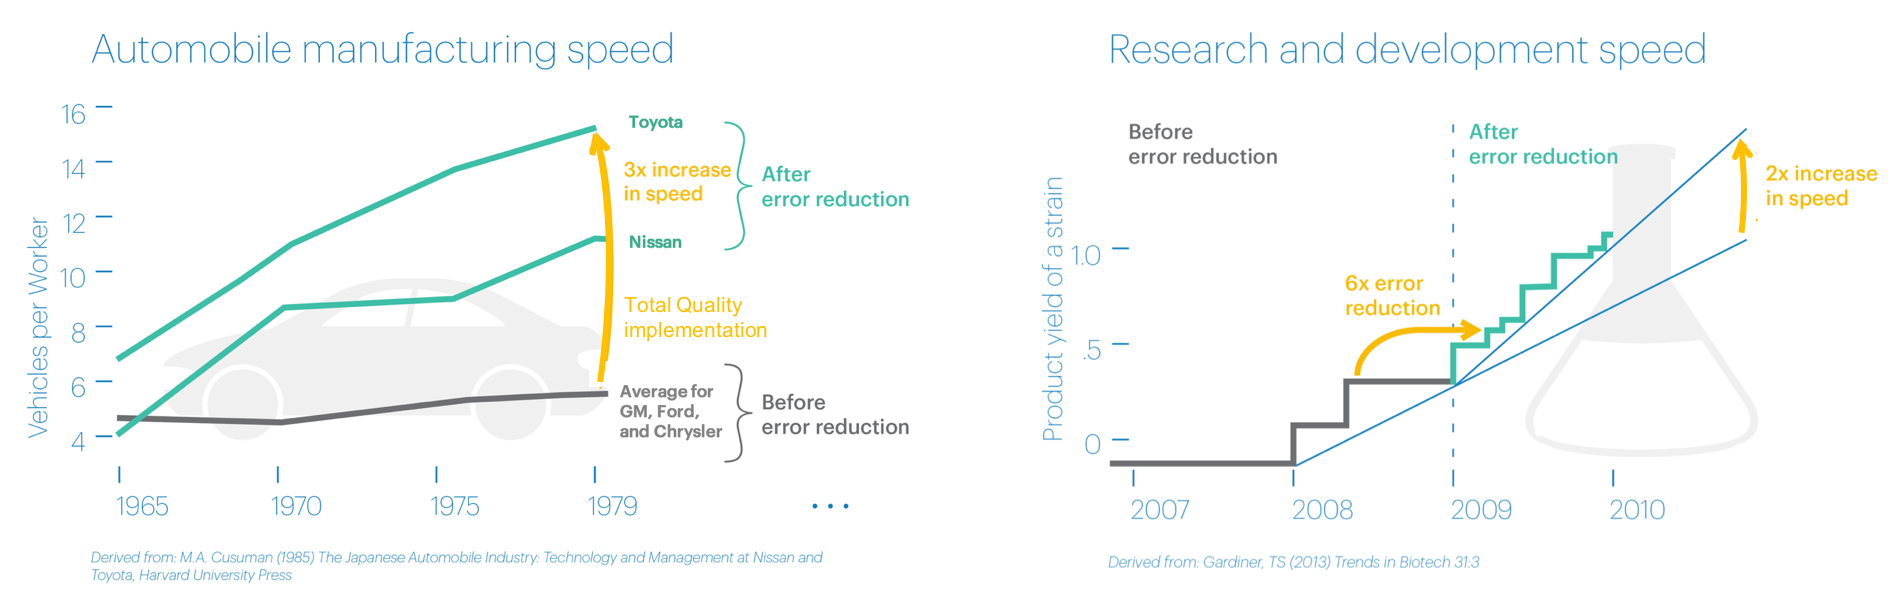 Application of quality methods drives dramatic increases in productivity in both manufacturing (left) and R&D (right) processes.